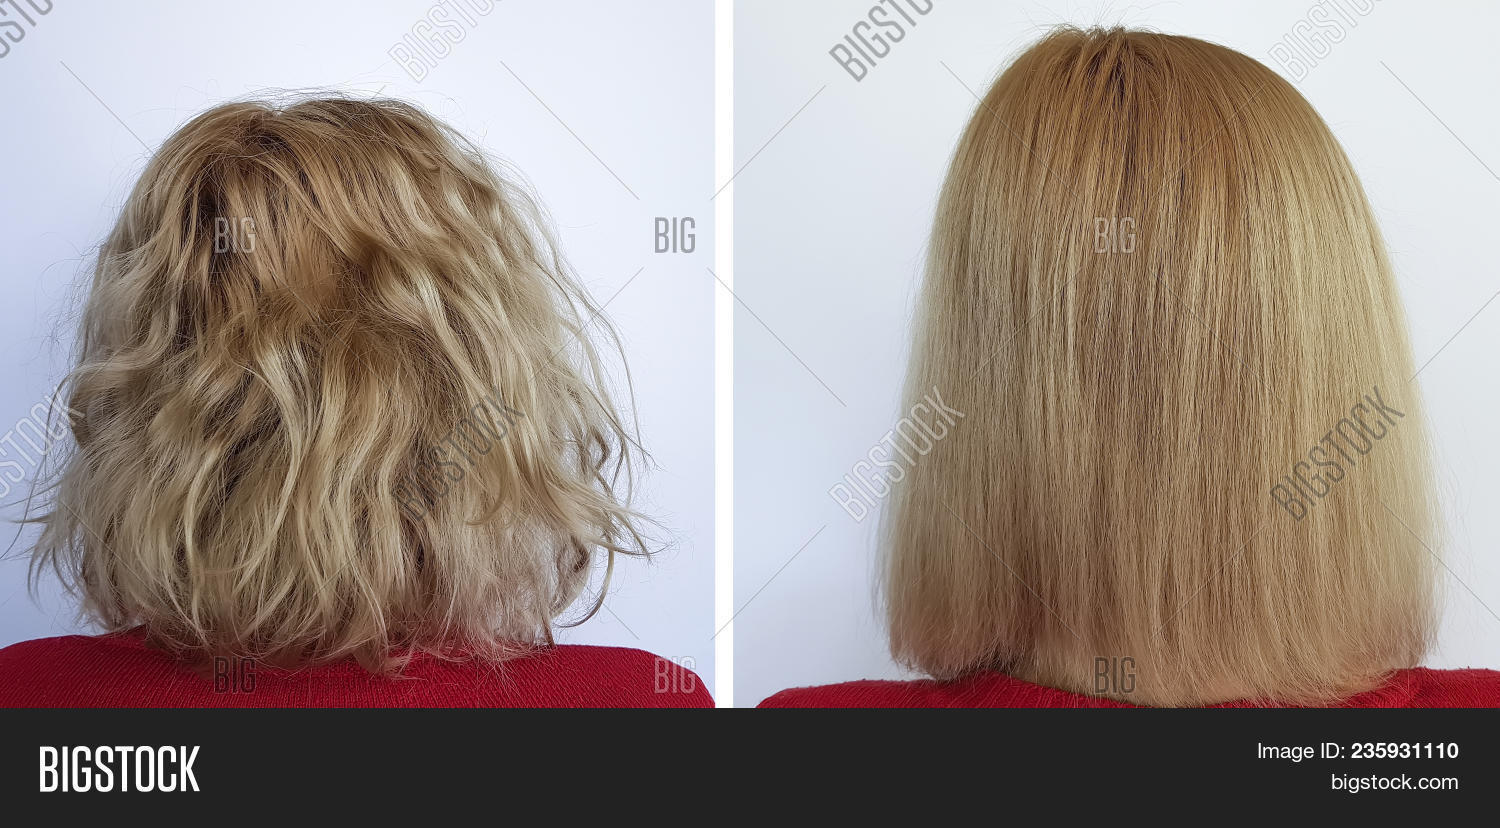 Lamination of hair: before and after. Hair Laminating Agent 94